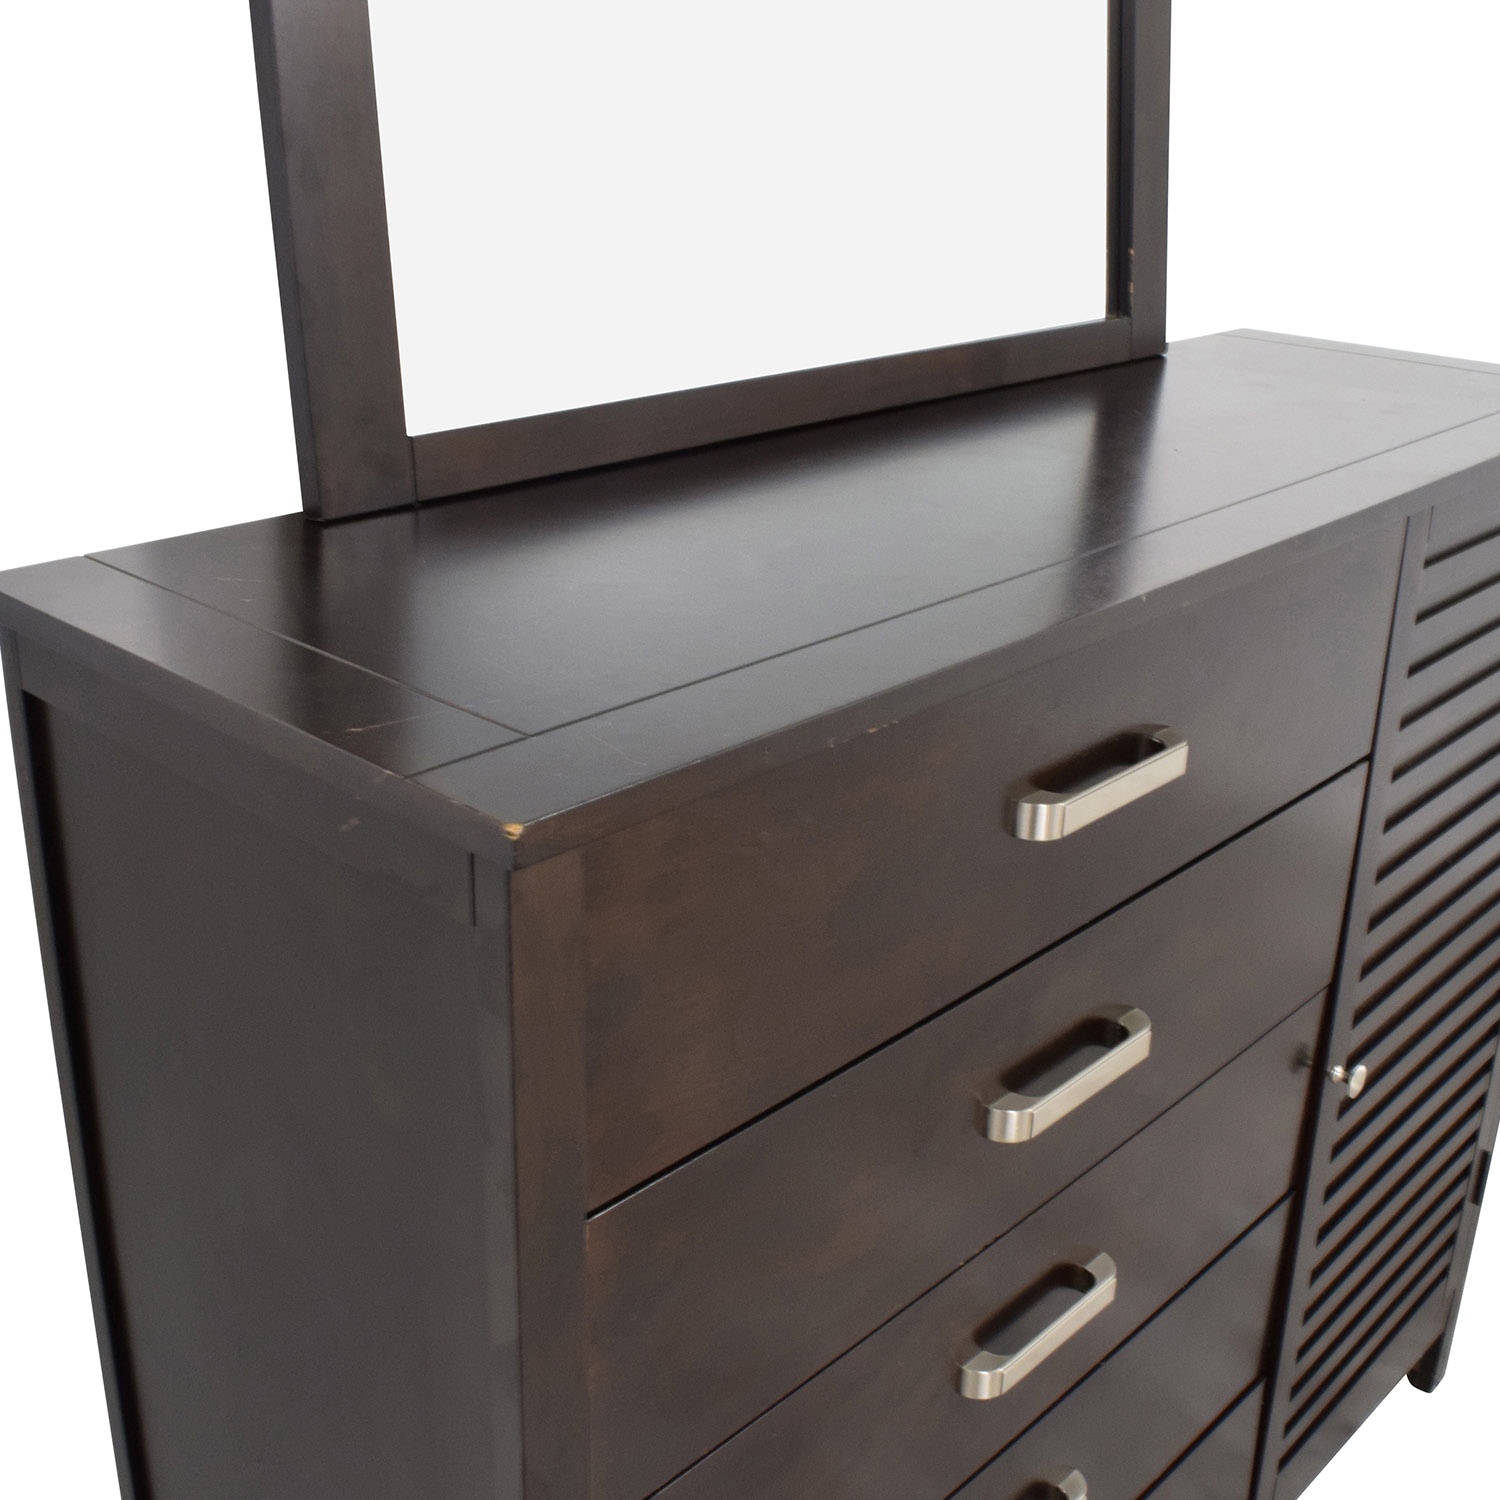 Rooms To Go Rooms to Go Espresso Grove Five-Drawer Dresser with Mirror dimensions